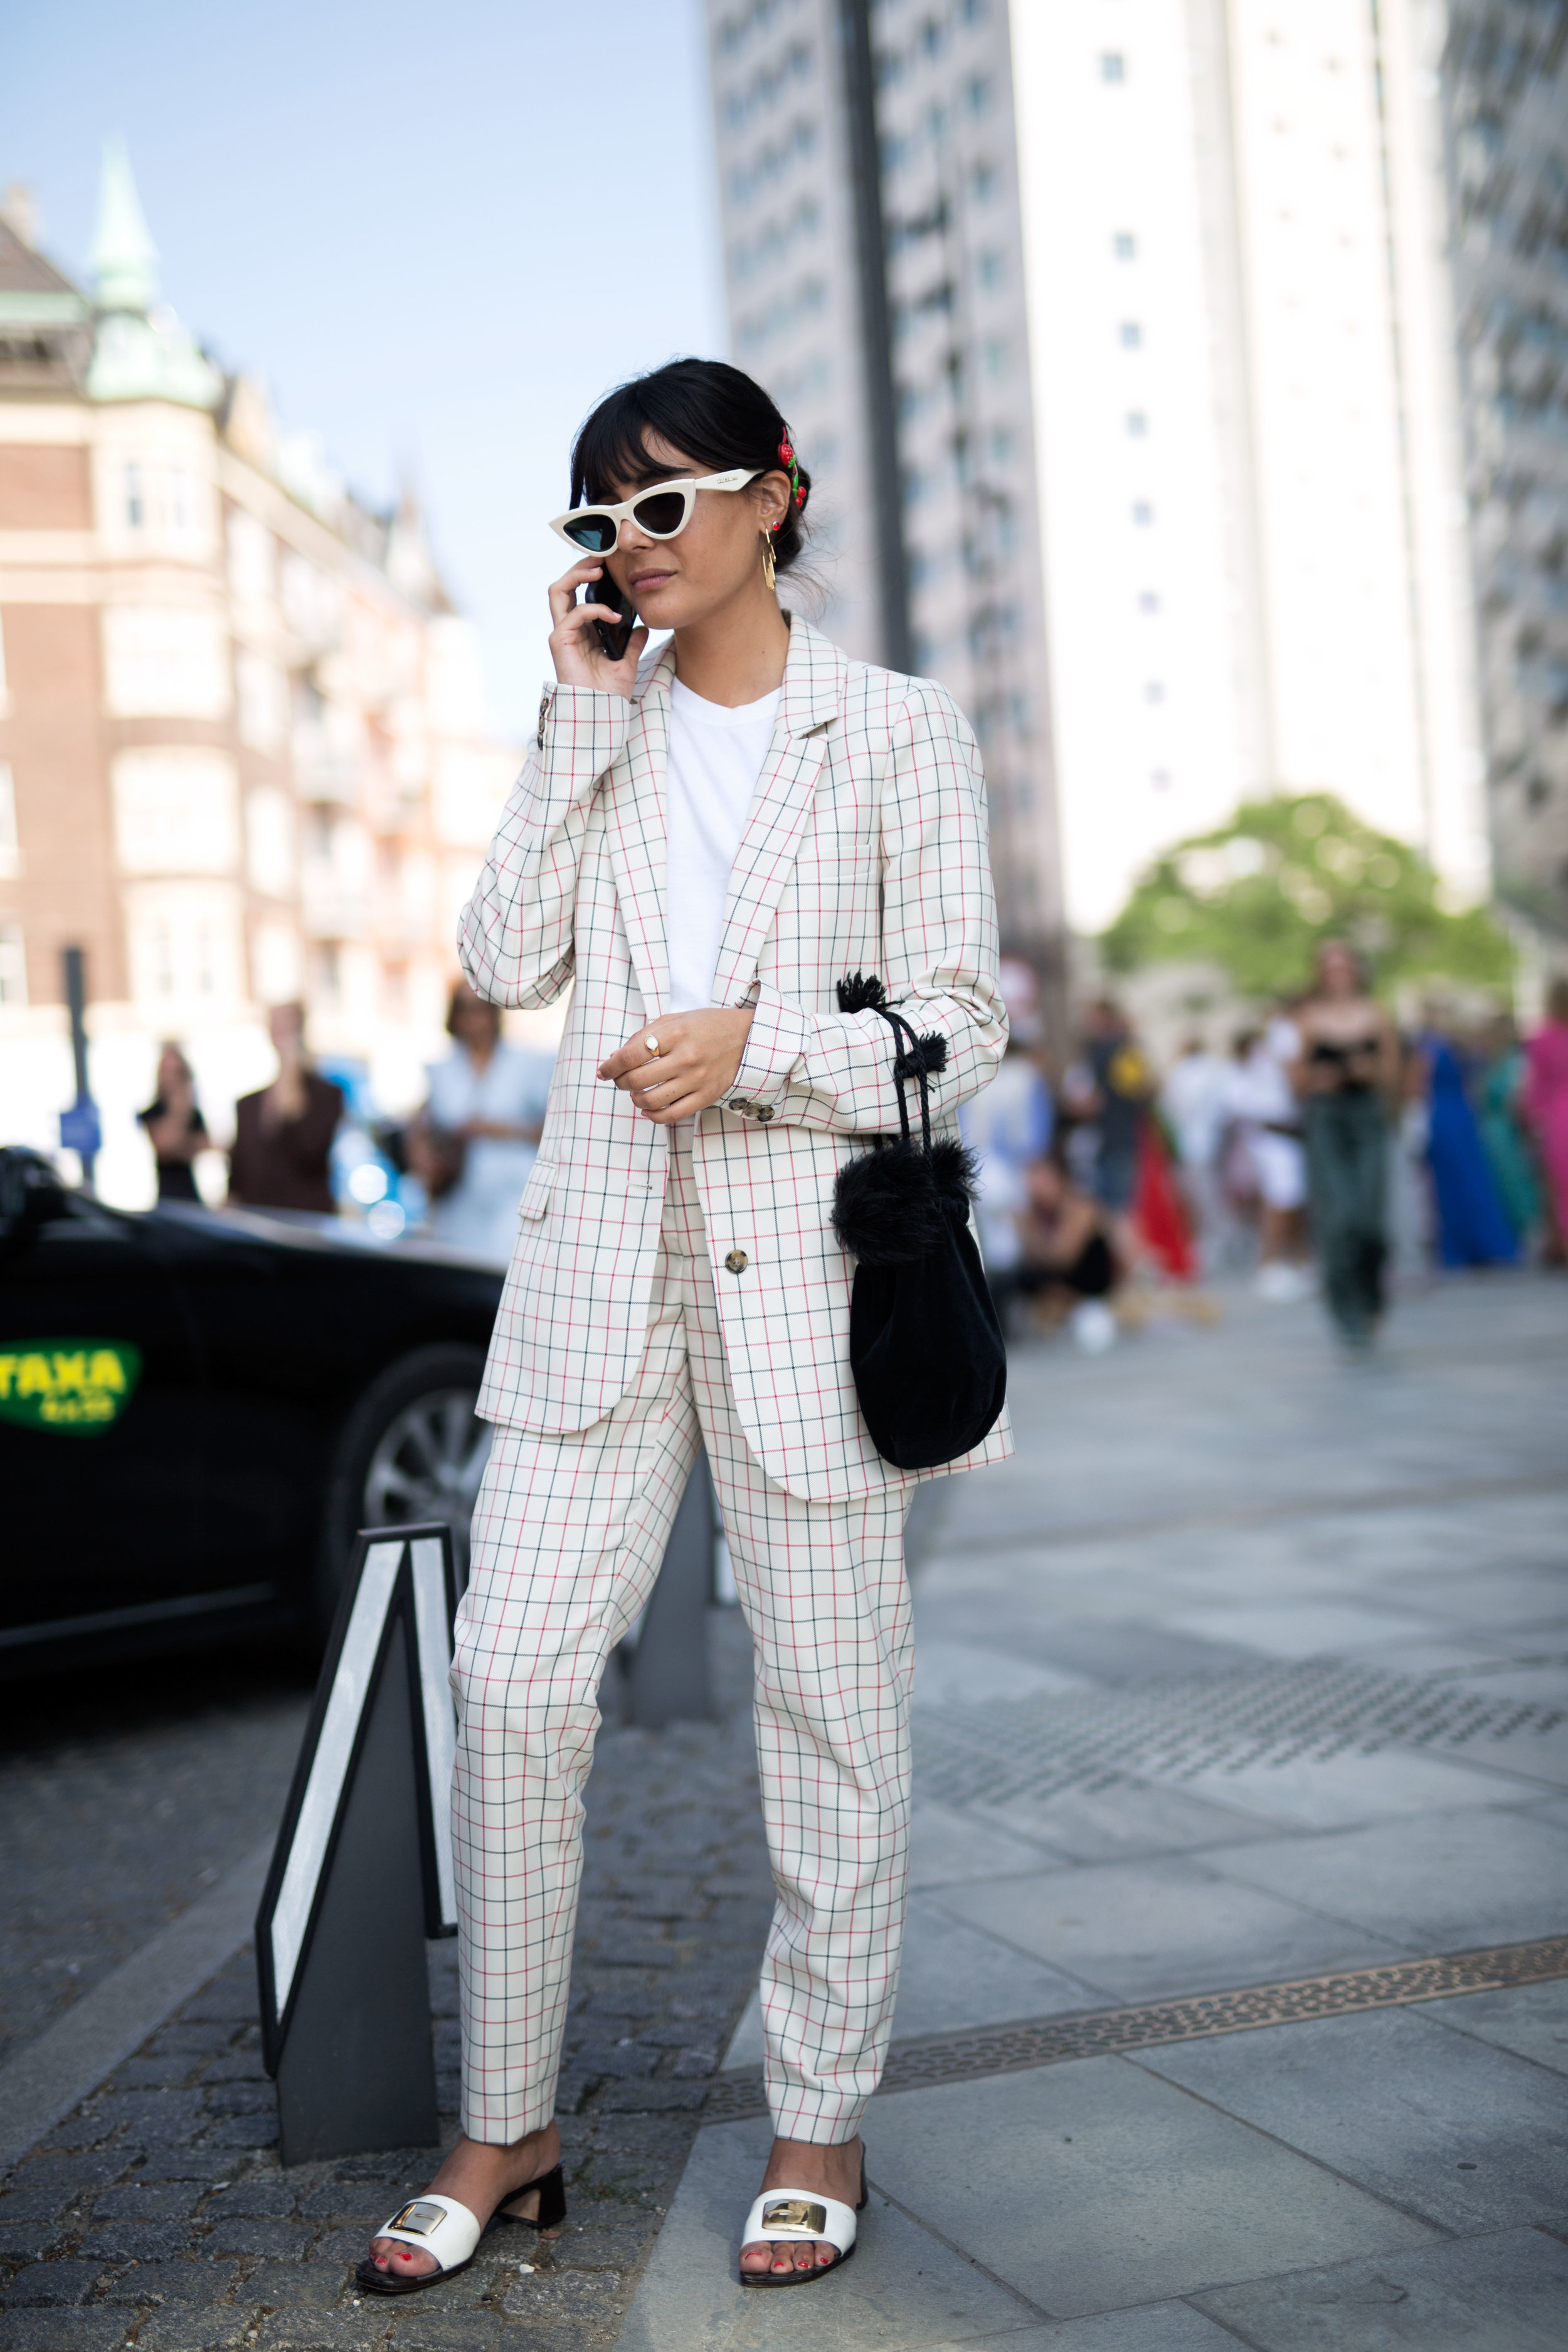 TheStreetland_Copenhagen_Fashion_Week_SS19_57.jpg